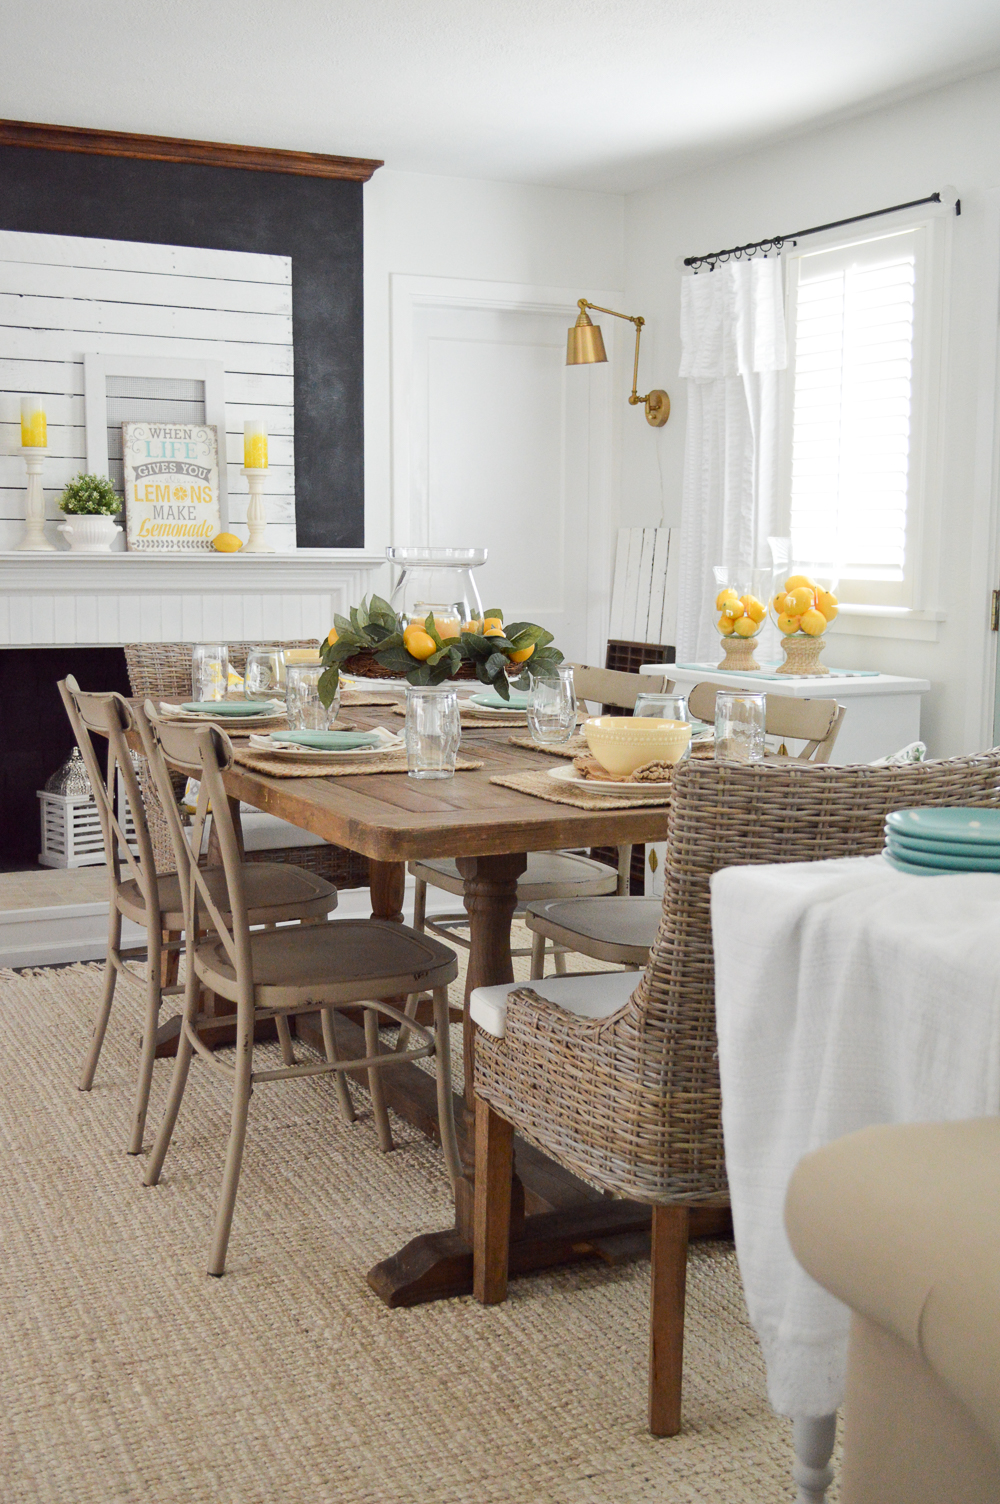 Cottage Summer Home Tour - Farm table, lemon decor, chalkboard firplace, brassy gold wall sconce